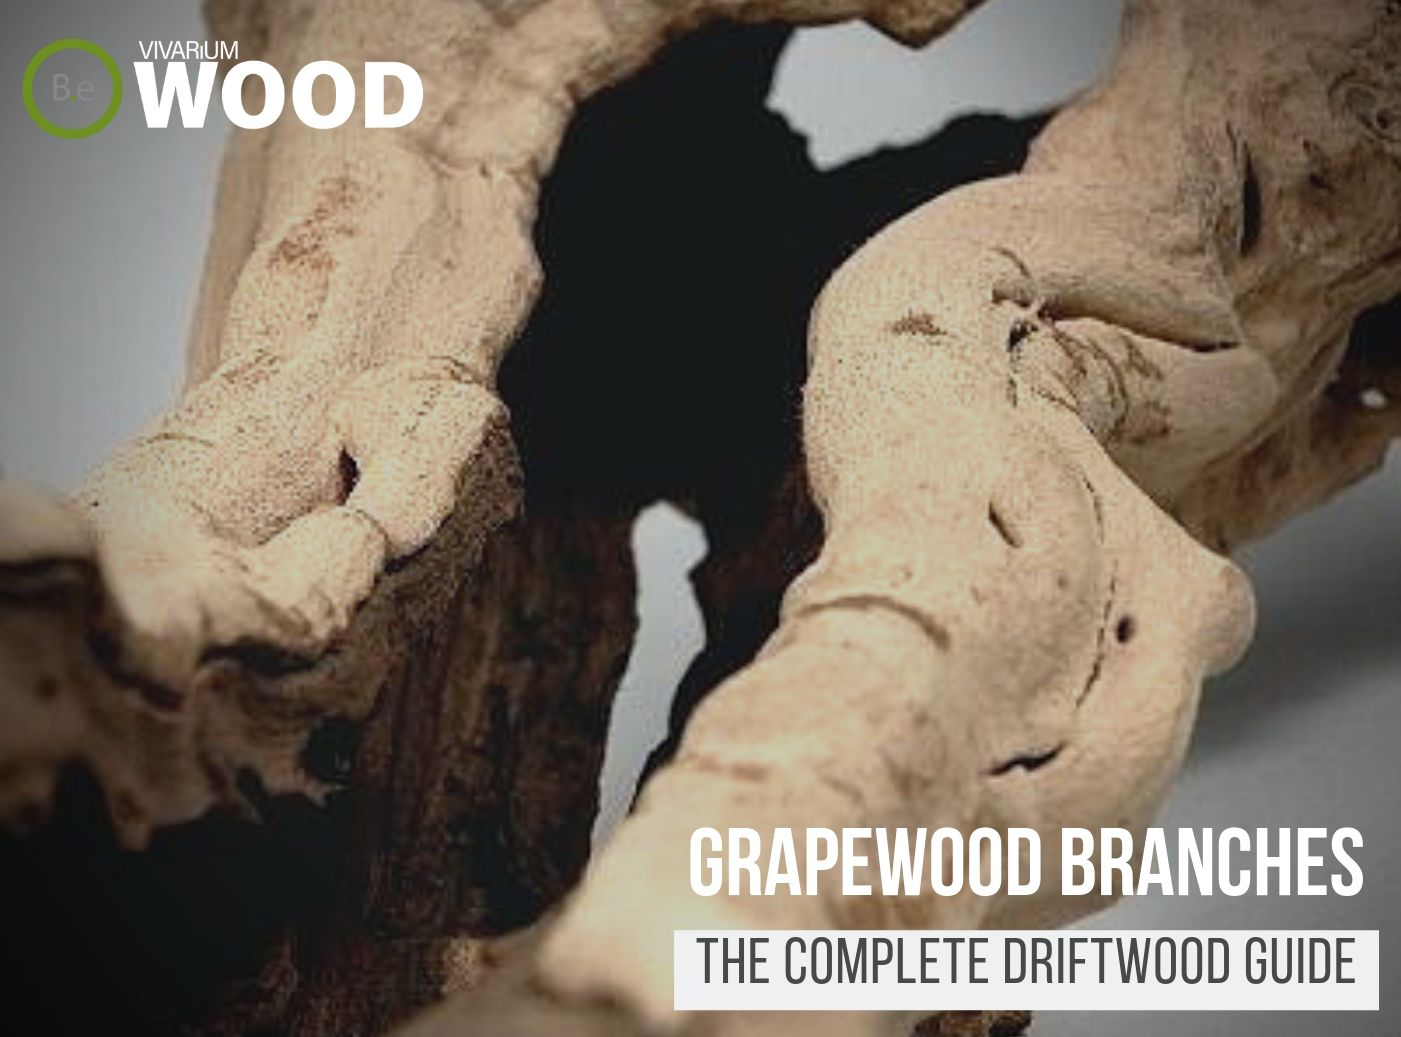 Grapewood Branches